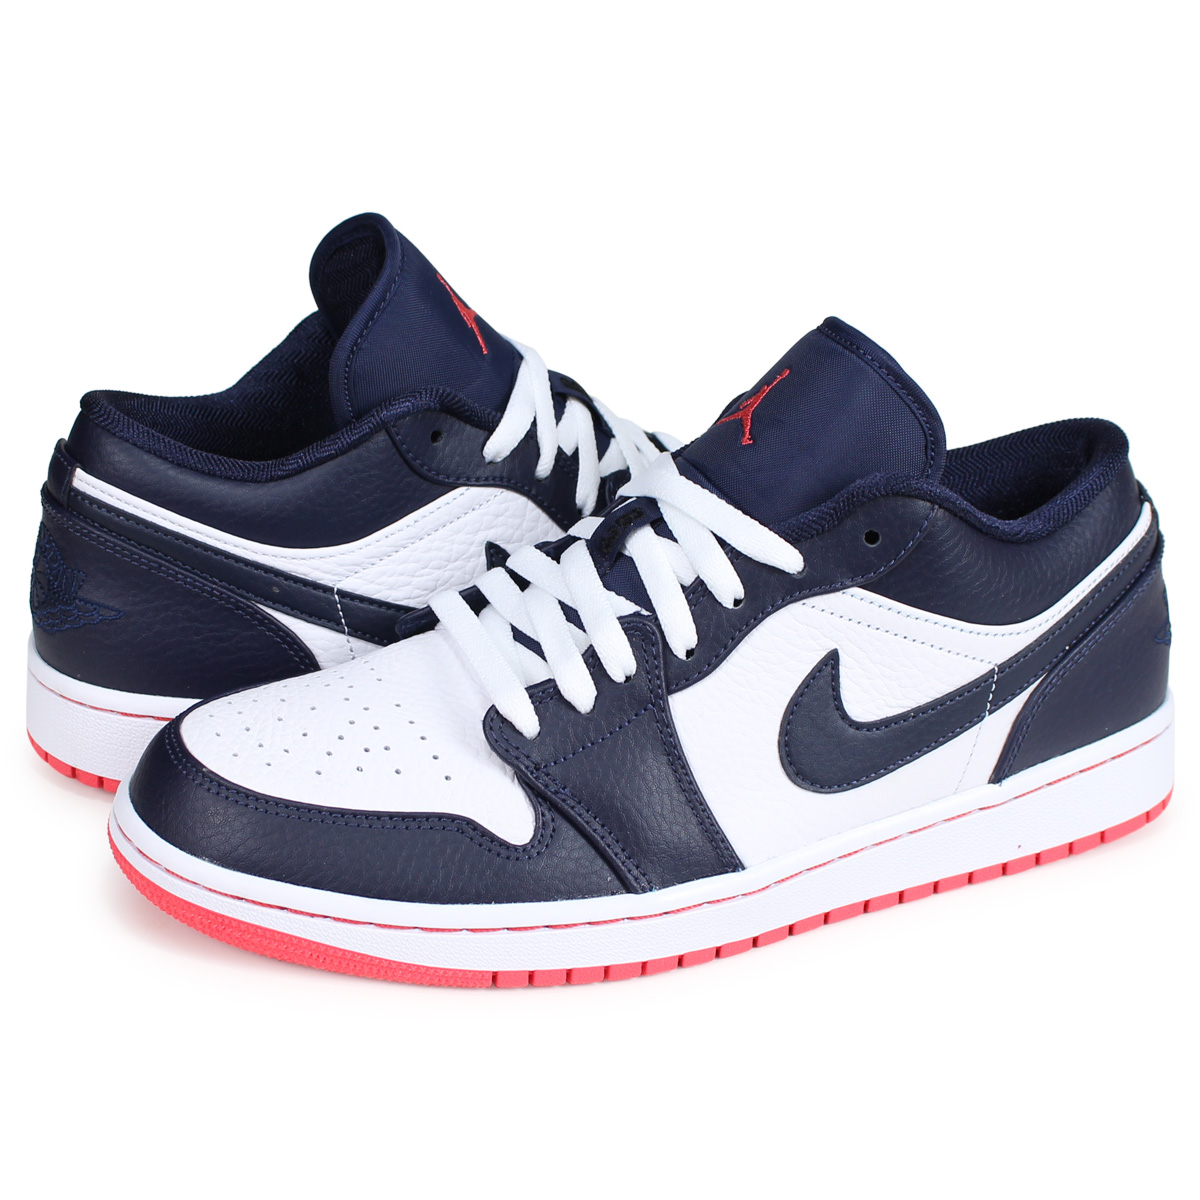 3b22790b2dd7d ALLSPORTS  Nike NIKE Air Jordan 1 sneakers men AIR JORDAN 1 LOW navy ...